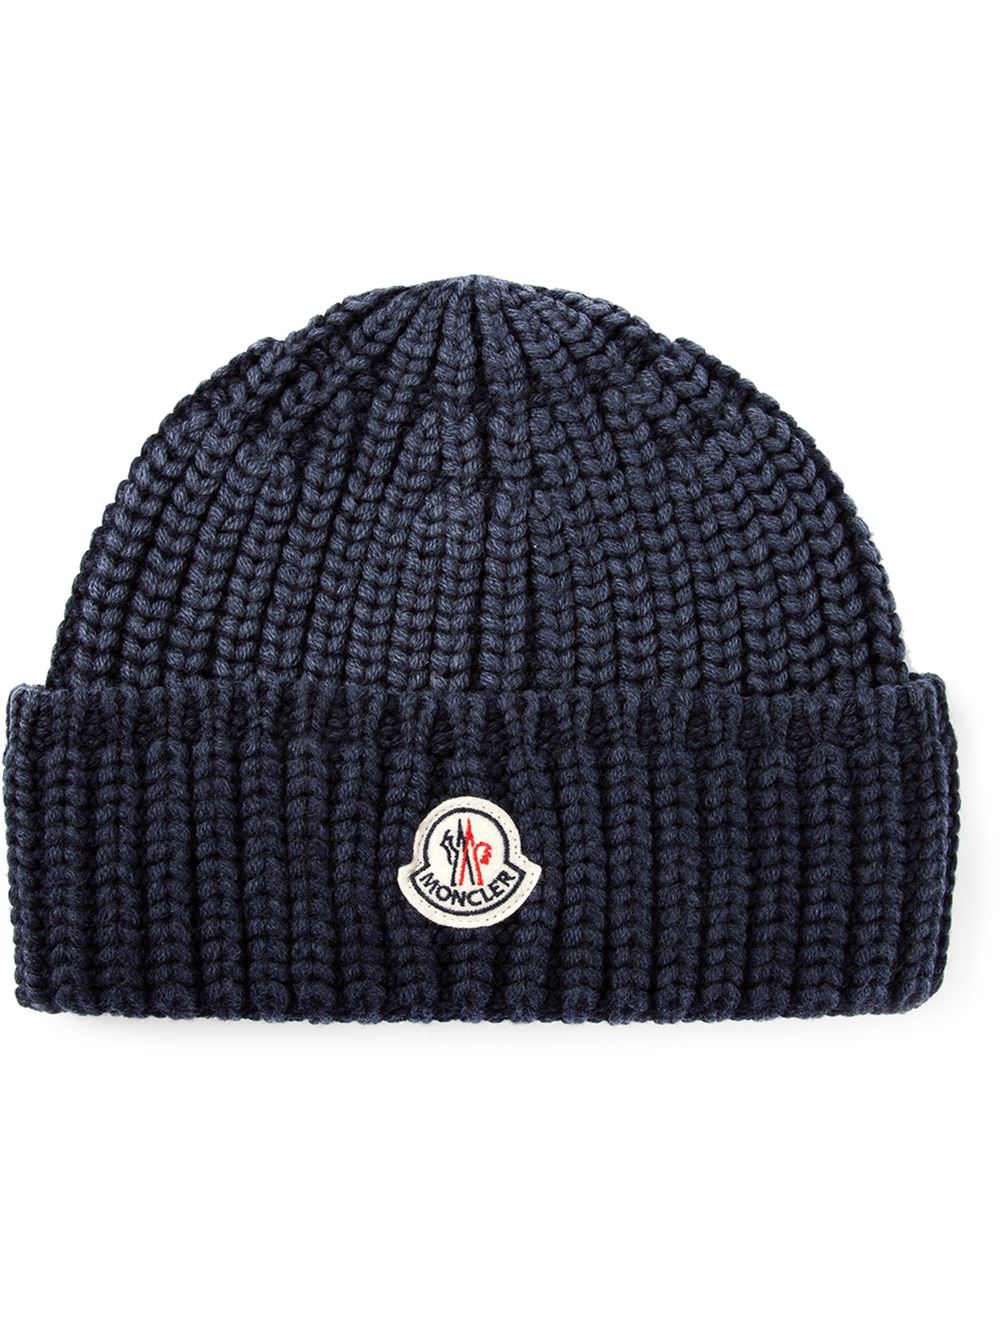 5ccfd749e1f Lyst - Moncler Ribbed Beanie in Blue for Men